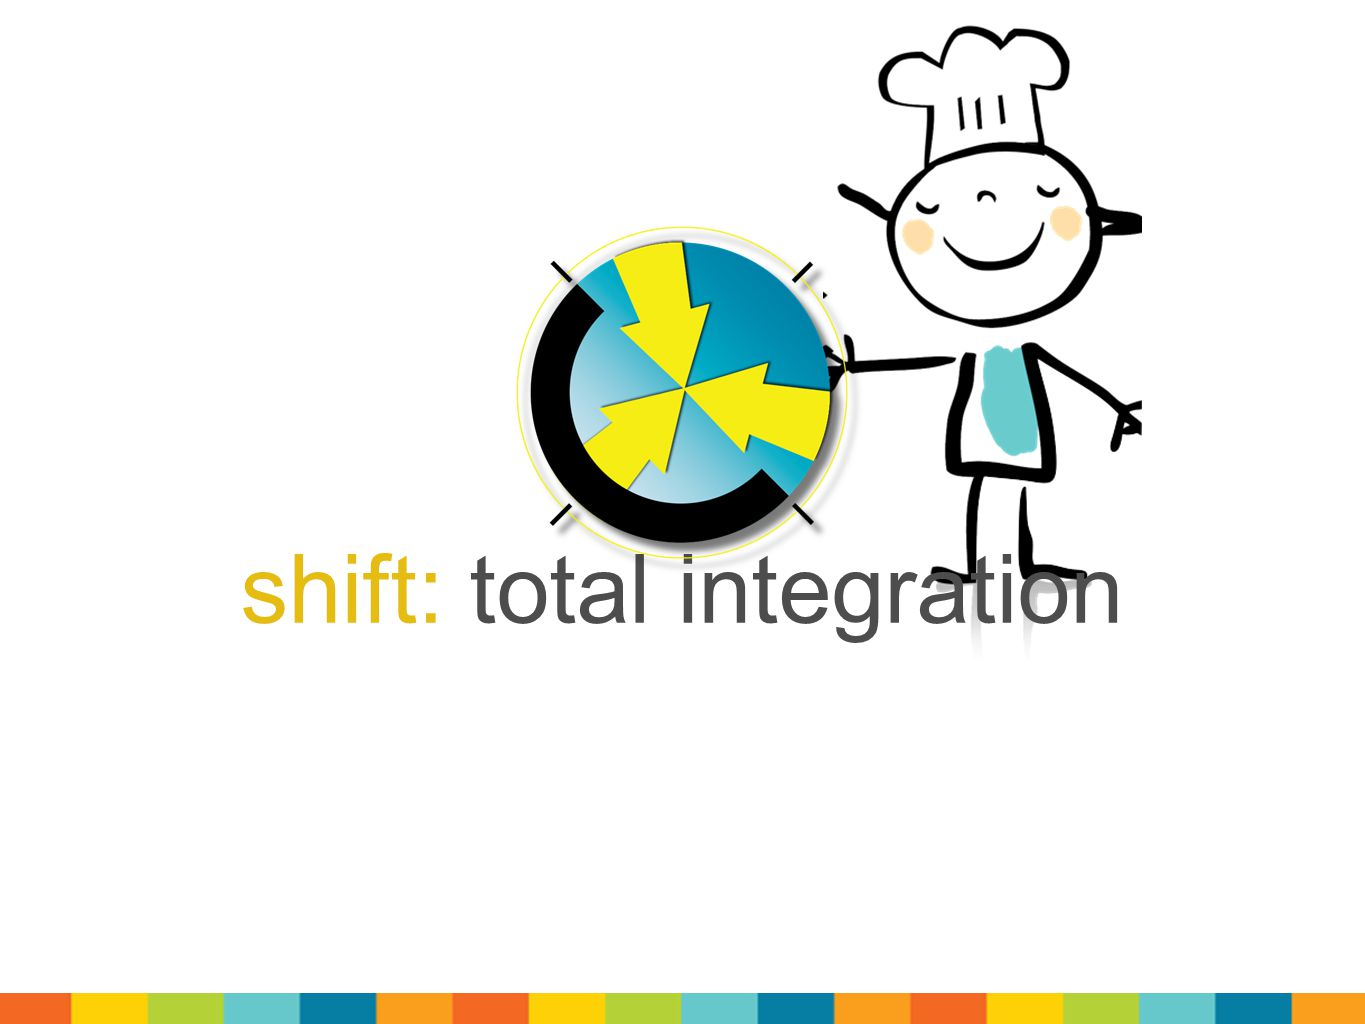 shift: total integration